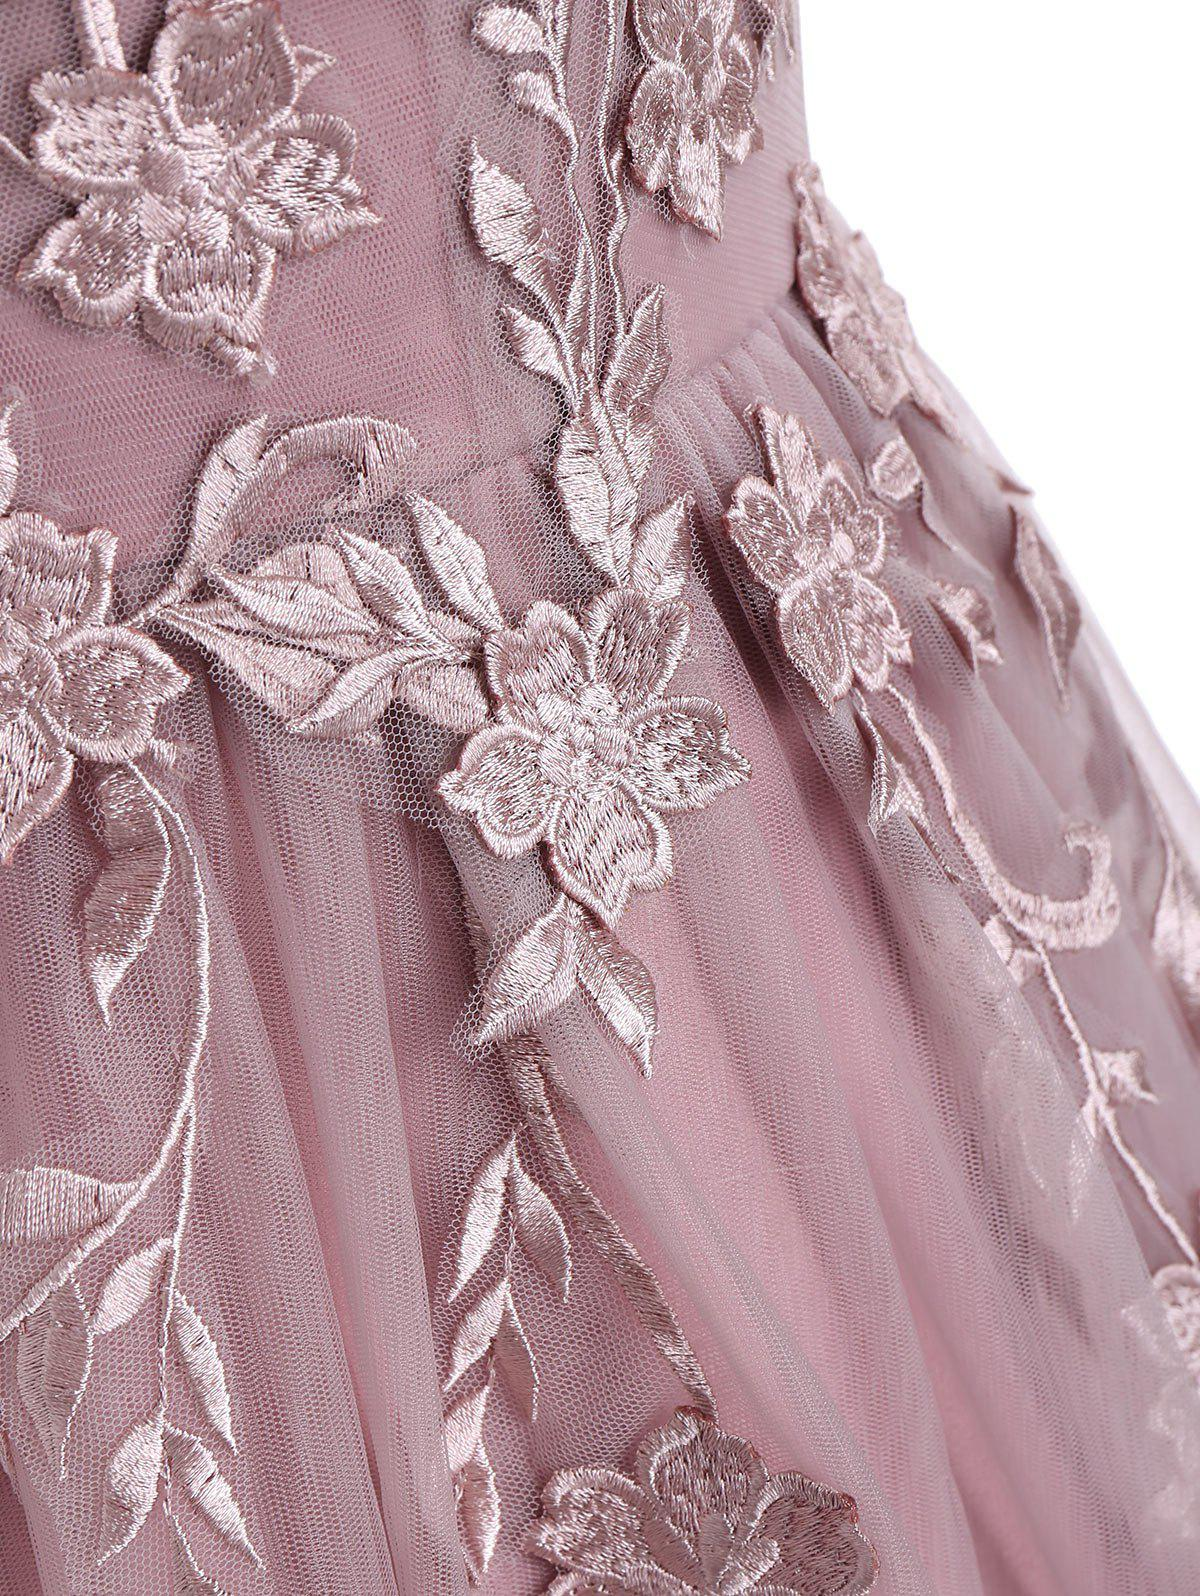 Floral Embroidered Mesh Yoke Sleeveless Evening Dress - PINK L